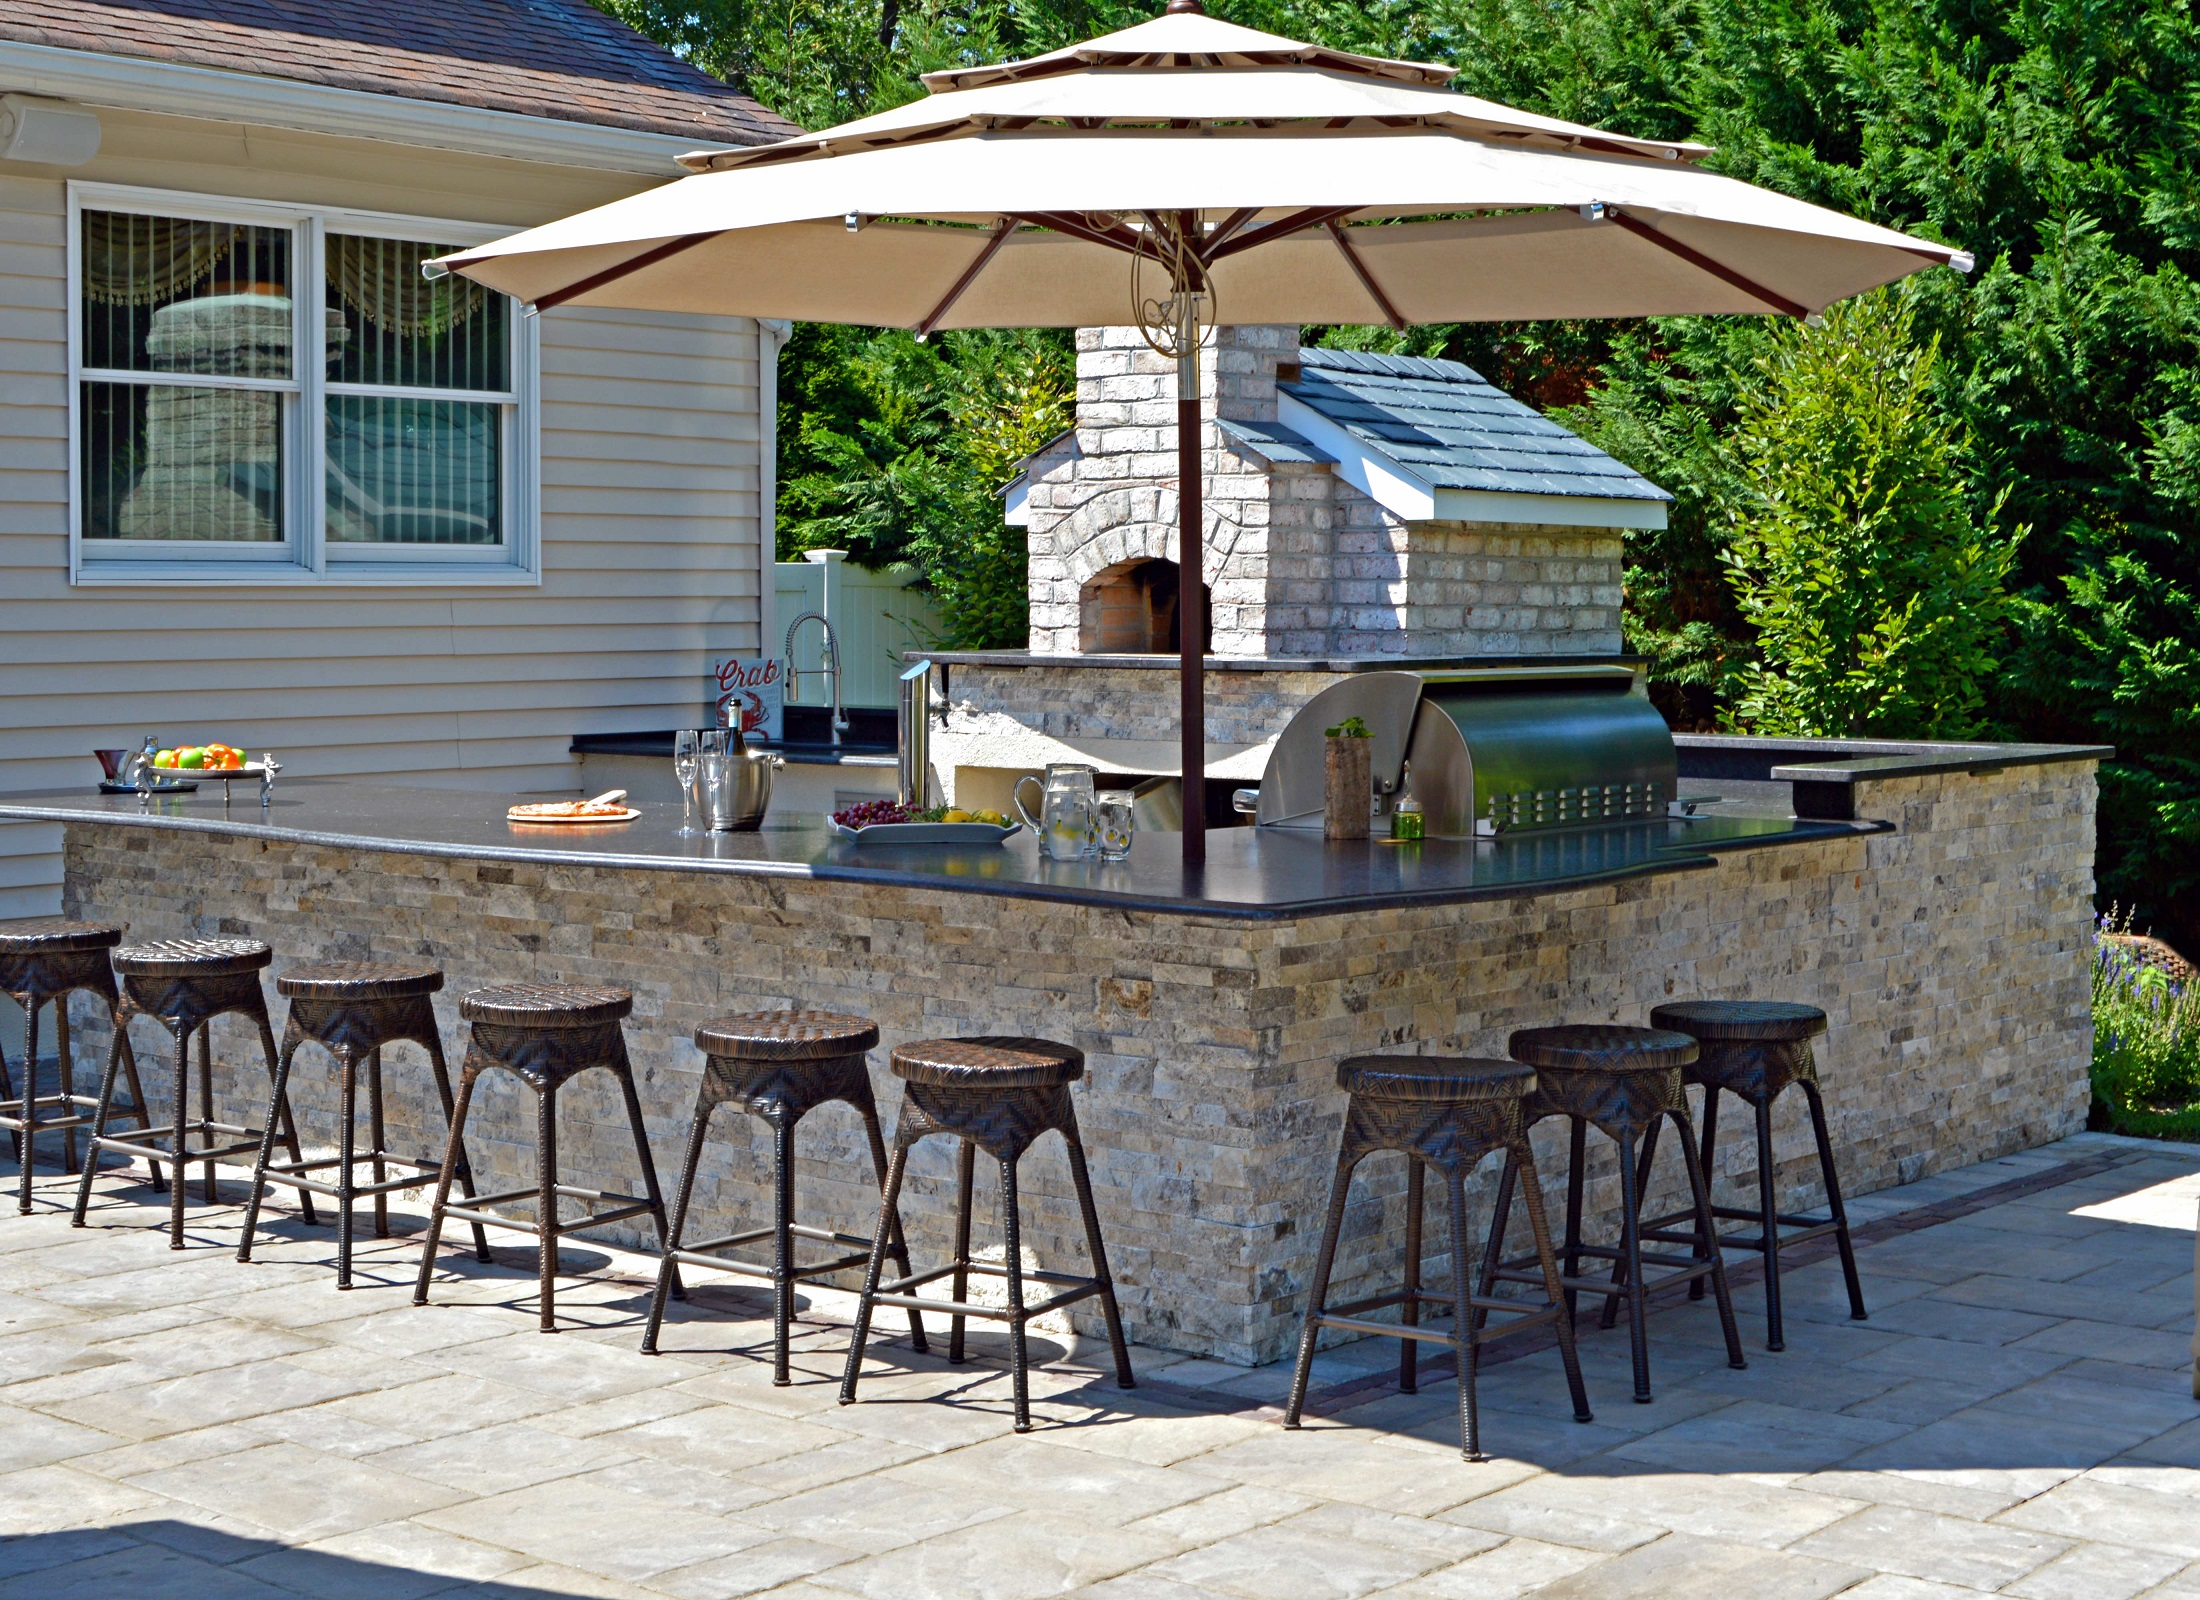 Outdoor kitchen landscape design in Smithtown, NY